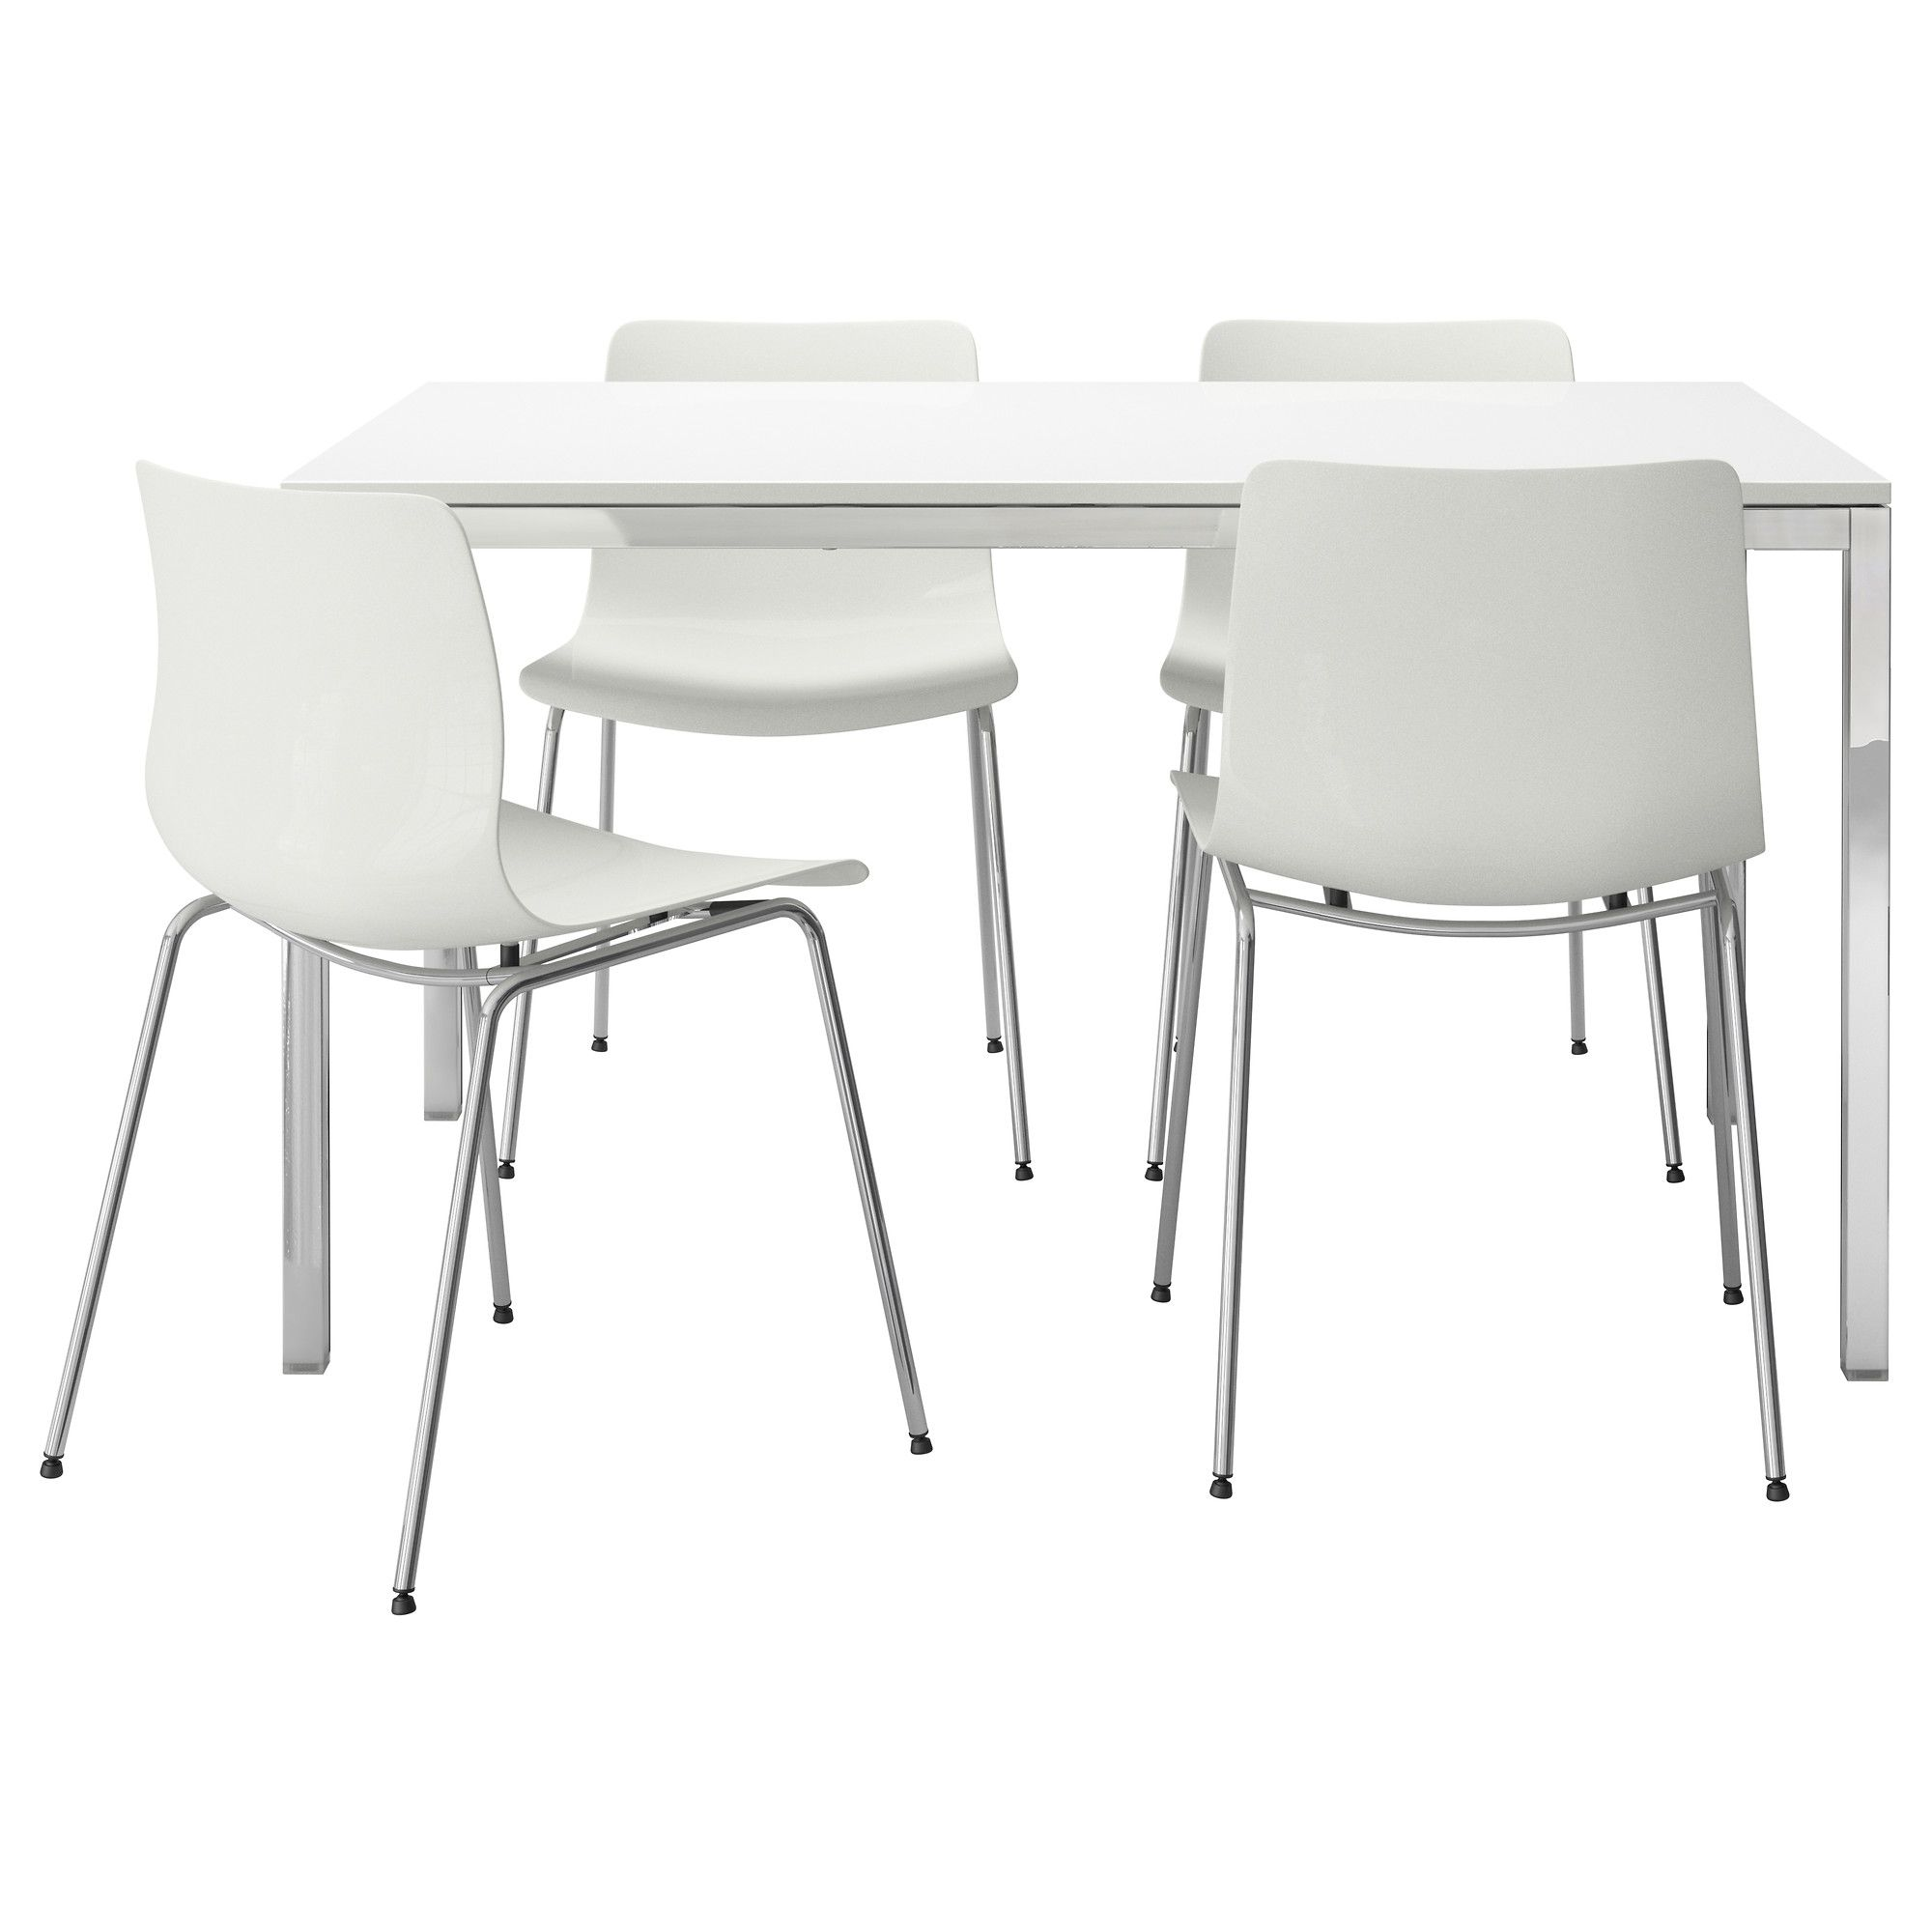 Kitchen table torsby erland table and 4 chairs ikea for X leg dining room table